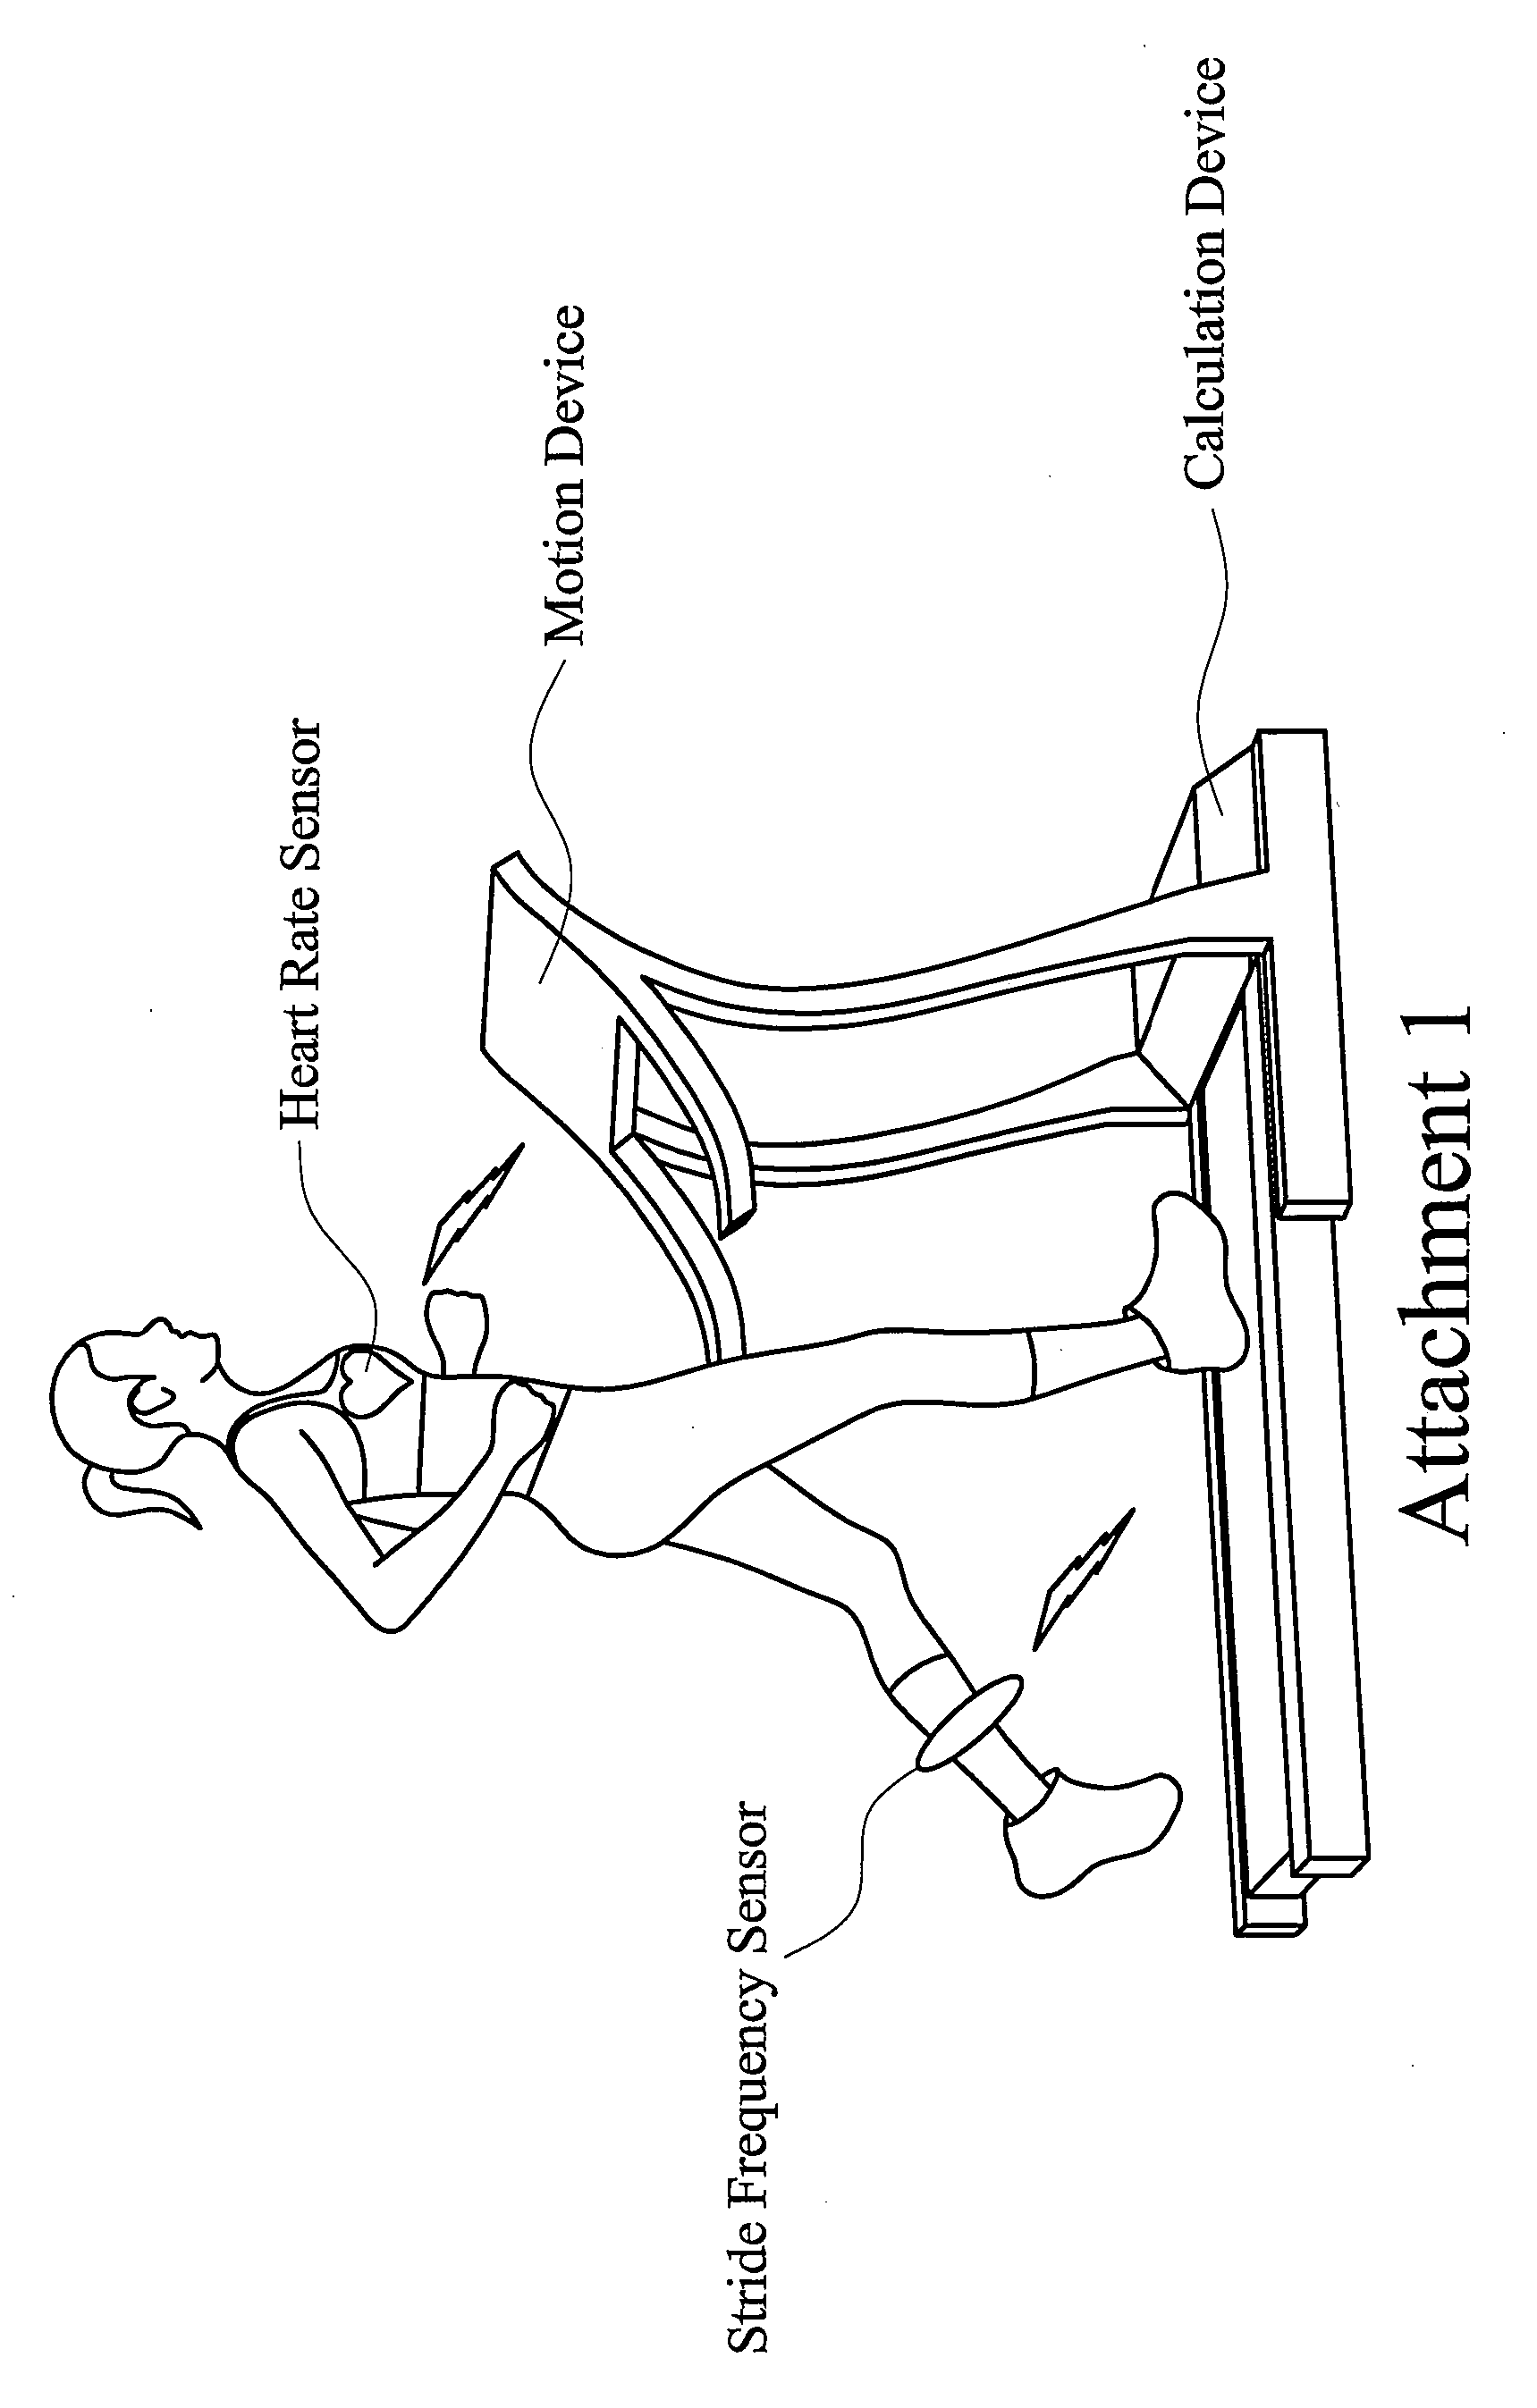 Patent Us20080161653 Cardio Respiratory Fitness Evaluation Method How To Set Up The Heart Rate Sensor Circuit Drawing